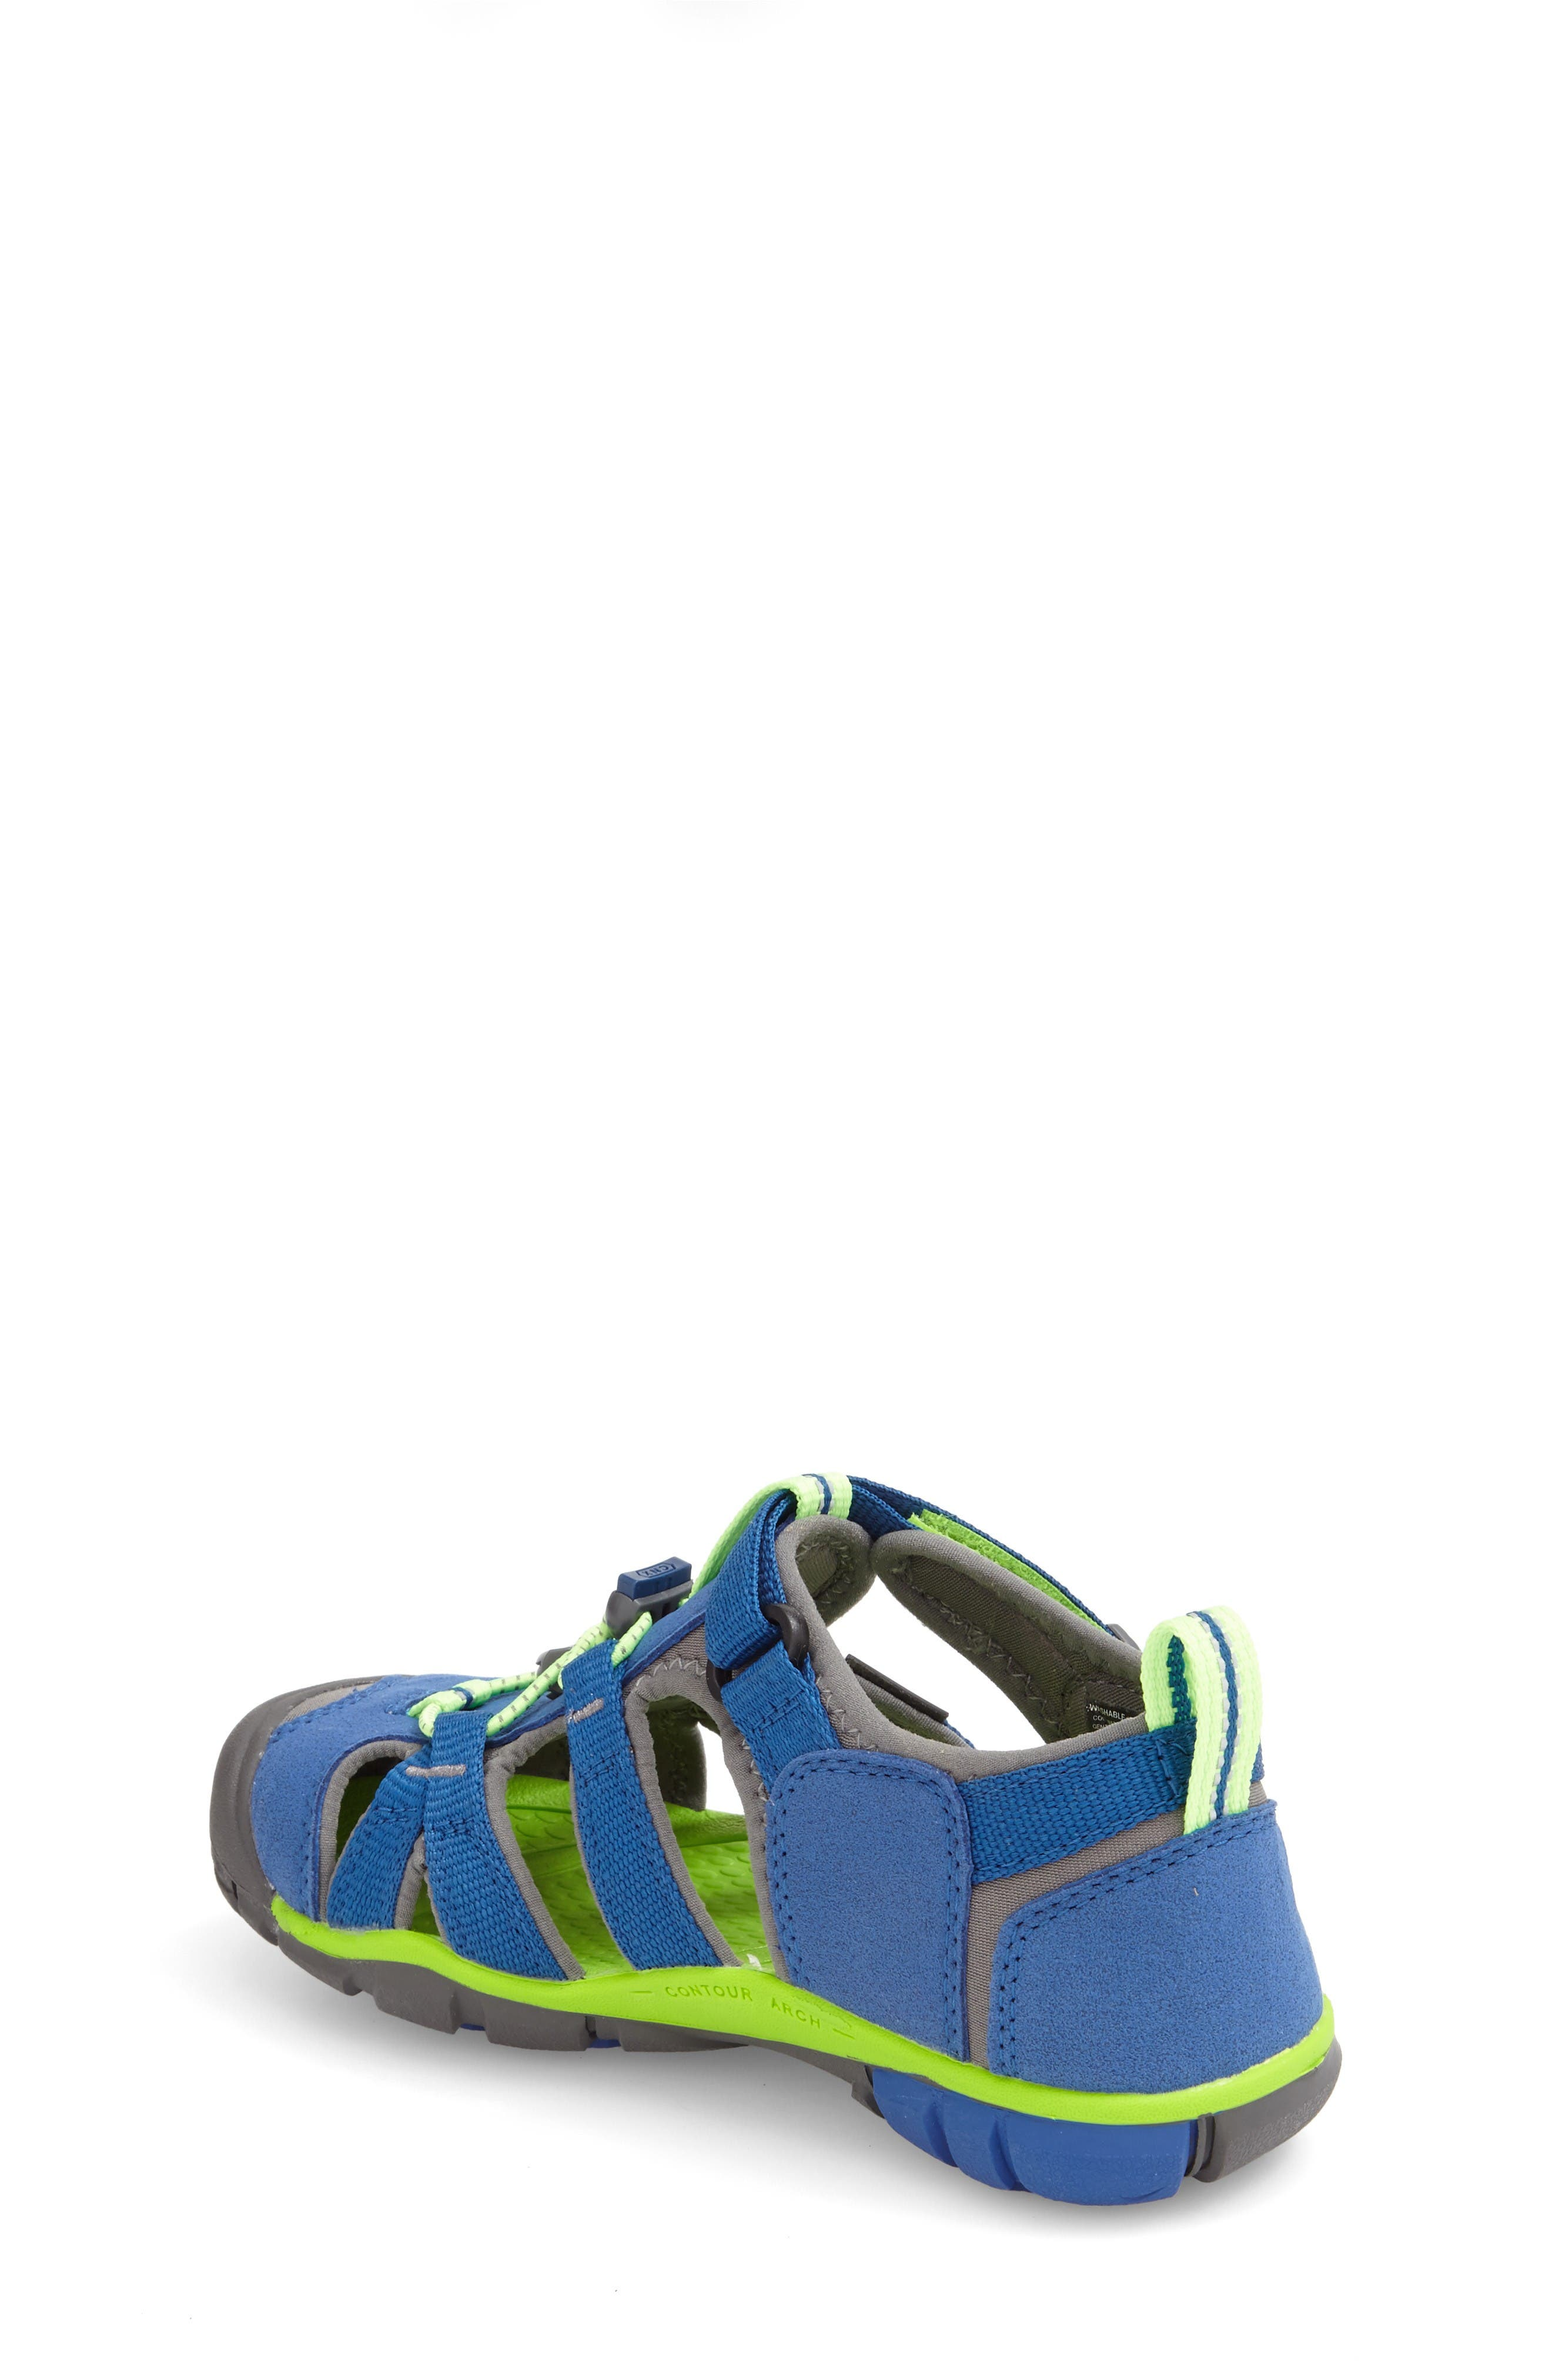 Alternate Image 2  - Keen Seacamp II Water Friendly Sandal (Baby, Walker, Toddler, Little Kid & Big Kid)